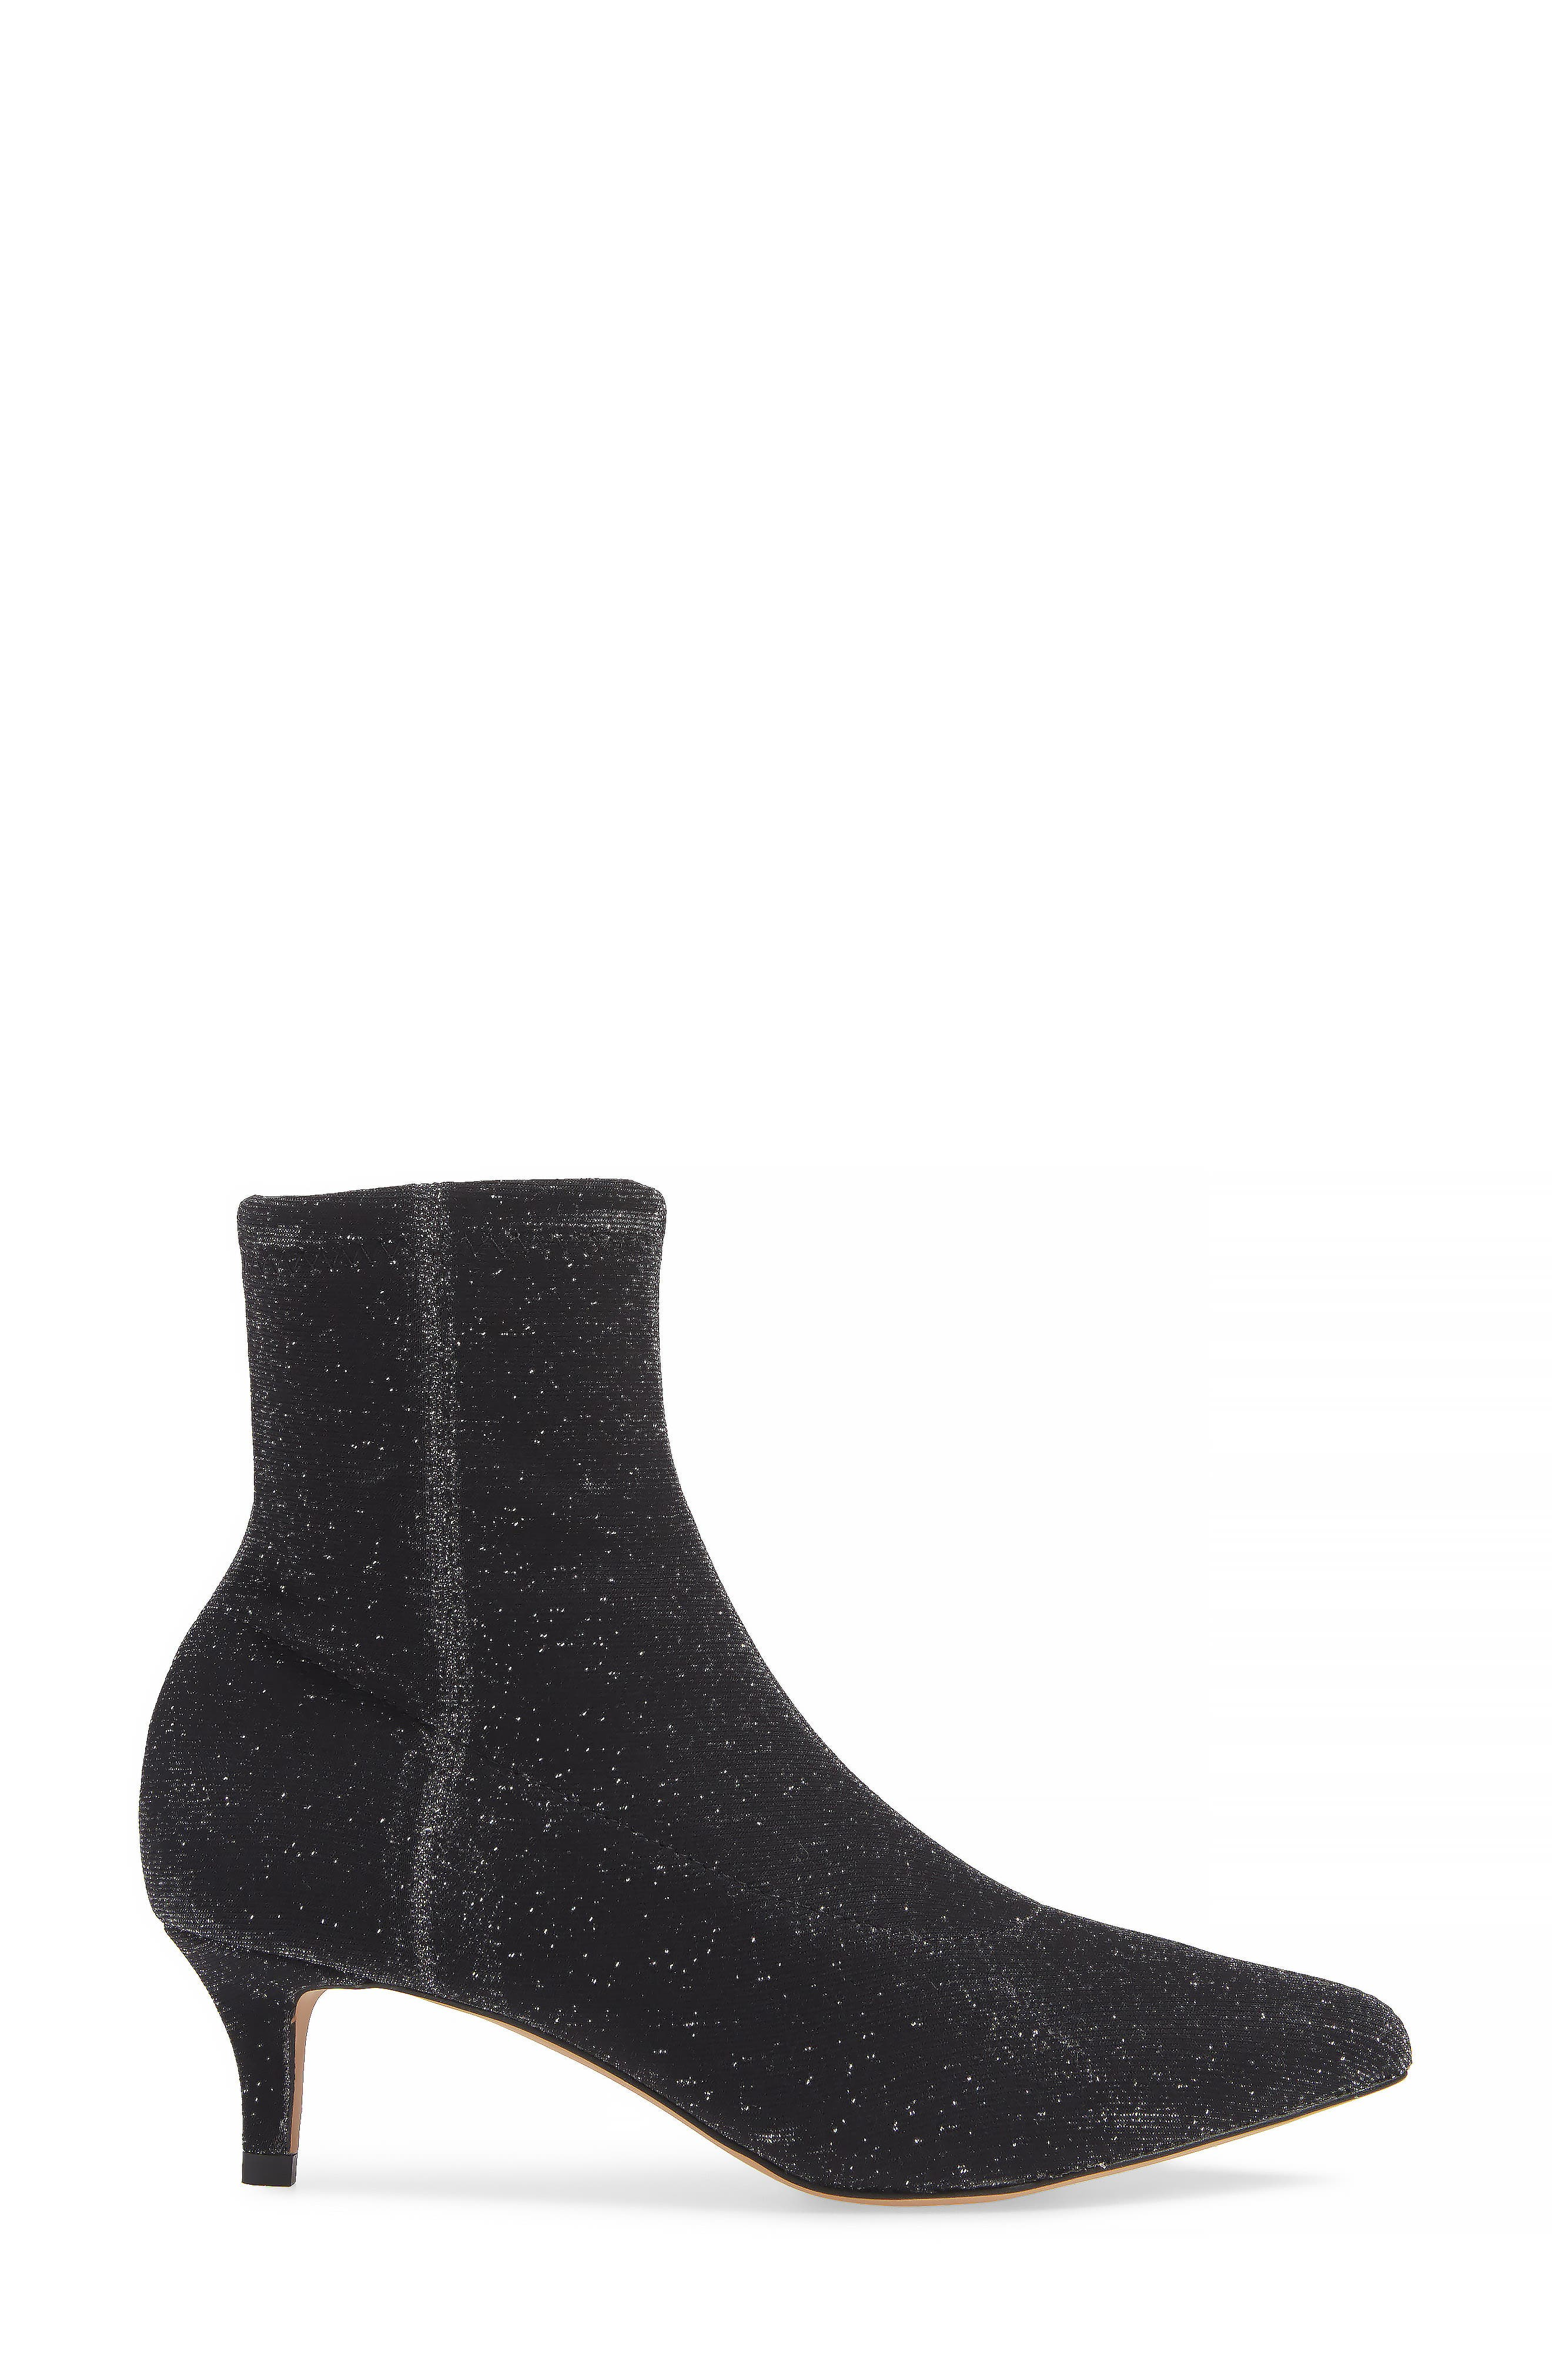 REBECCA MINKOFF, Sayres Bootie, Alternate thumbnail 3, color, BLACK FABRIC